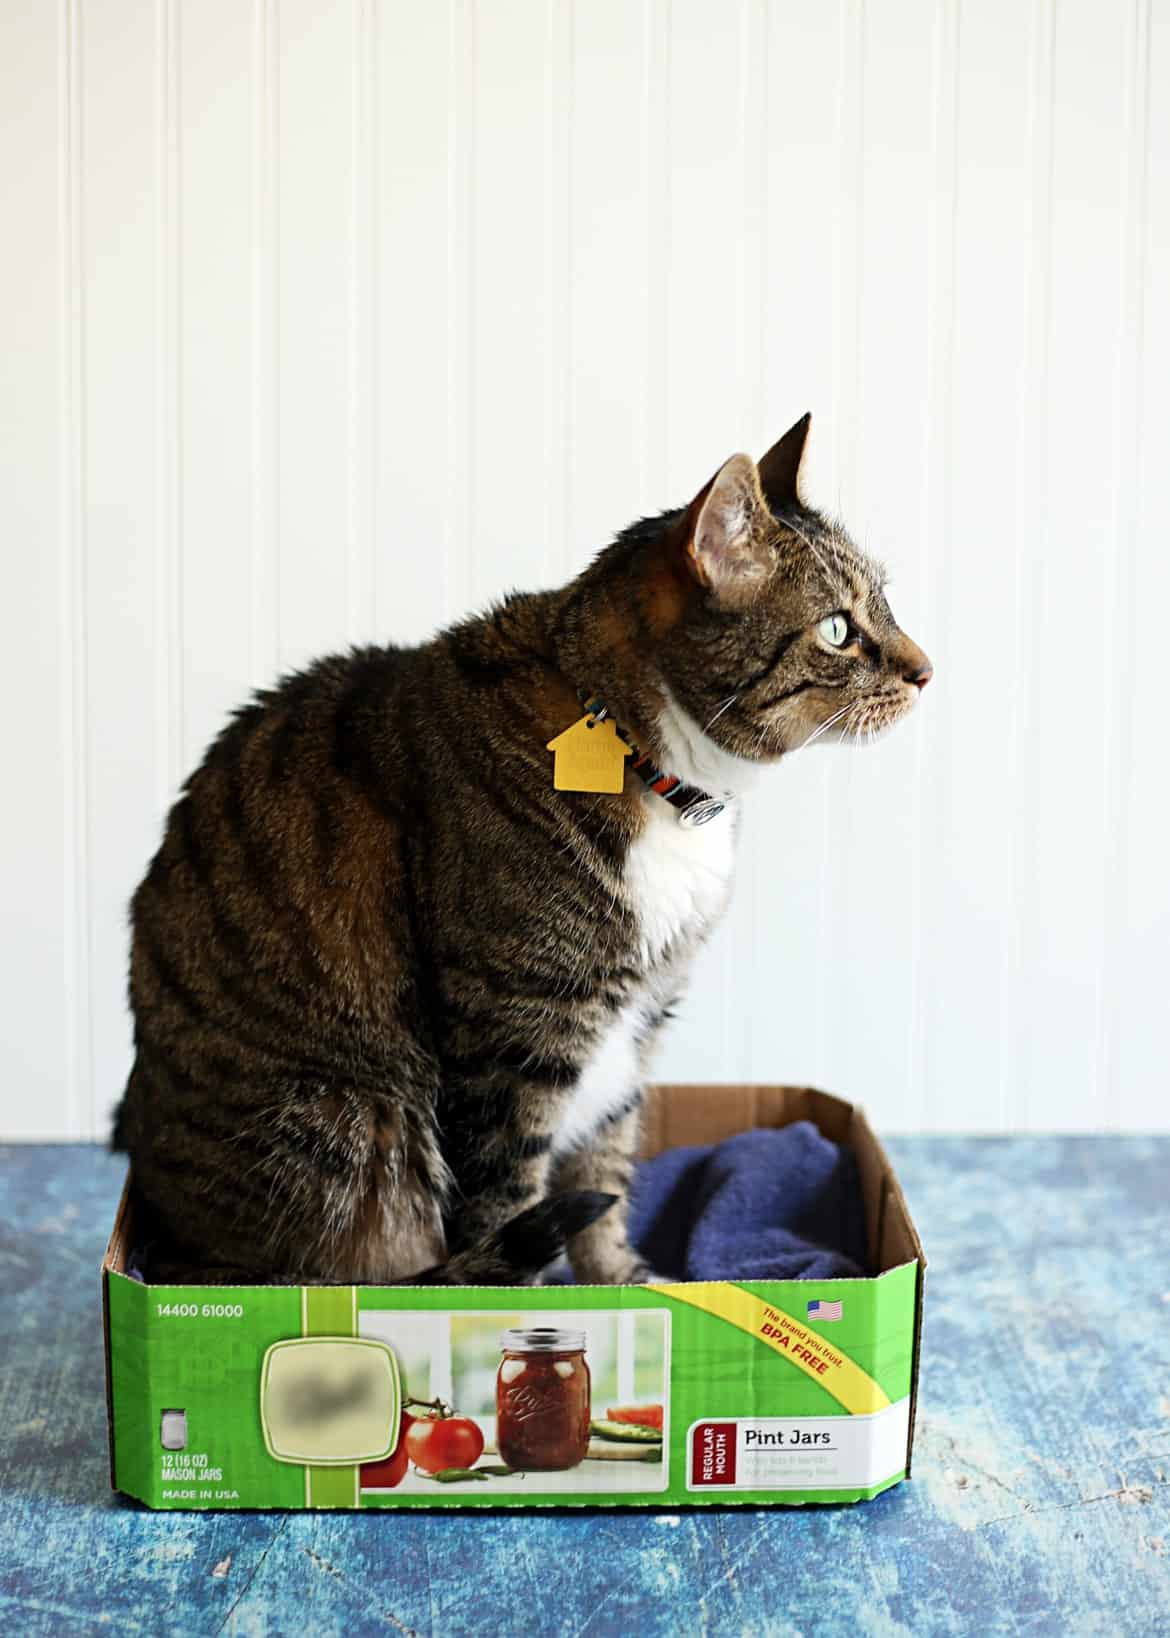 How You and Your Kids Can Help Shelter Cats (AD) #LitterForGood #CatsPride #cats #shelterpets #adoptdontshop